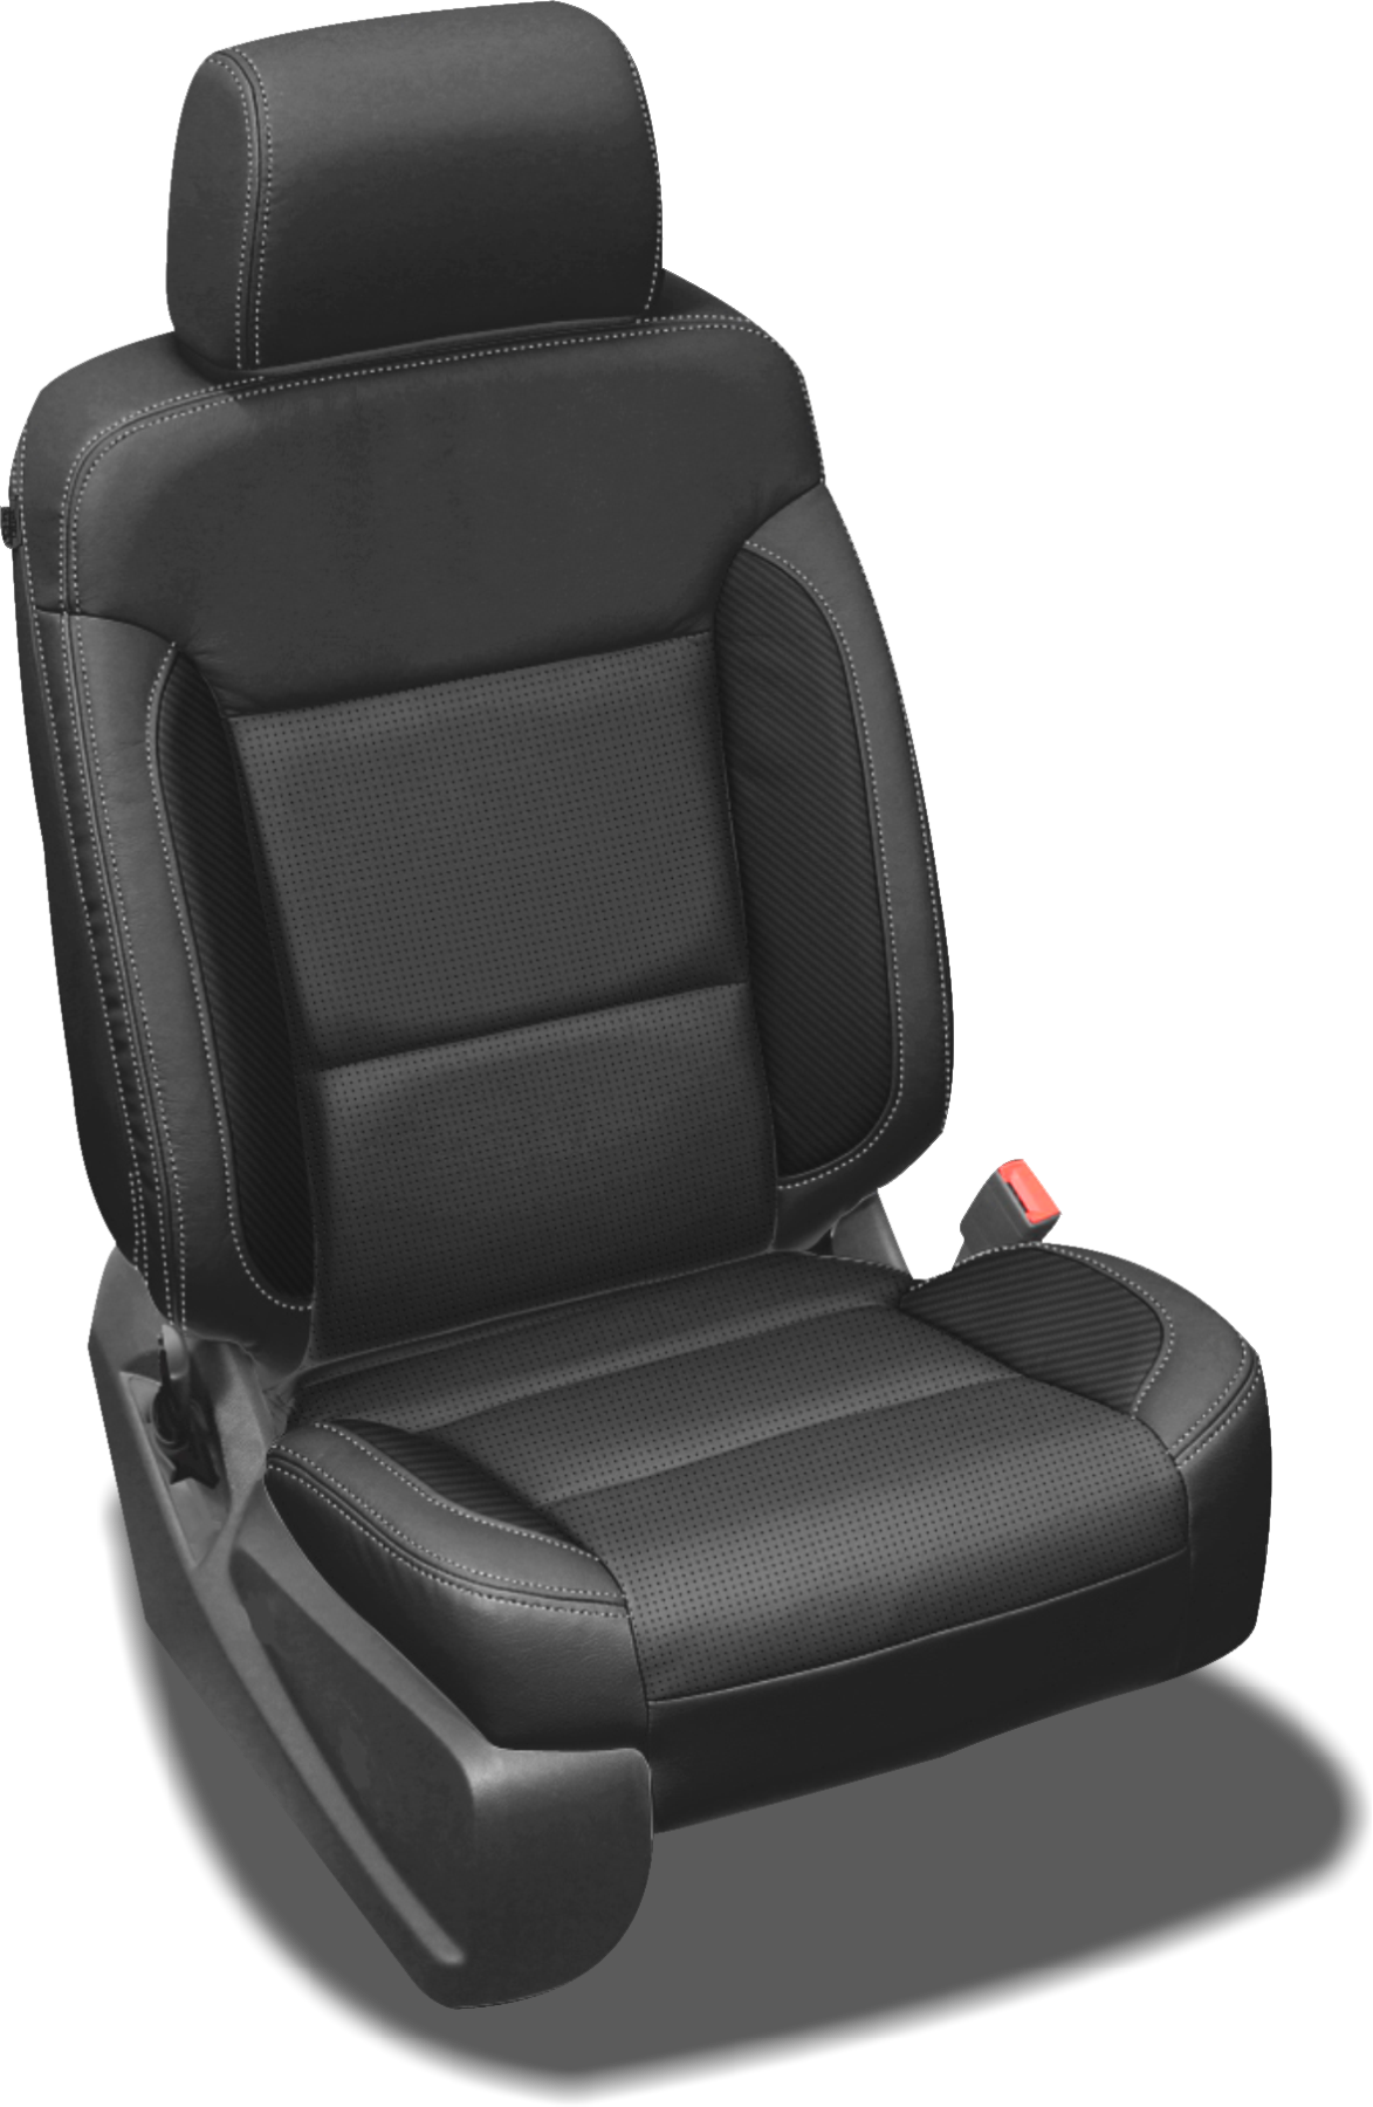 Awesome Oem Seat Covers For Chevy Trucks